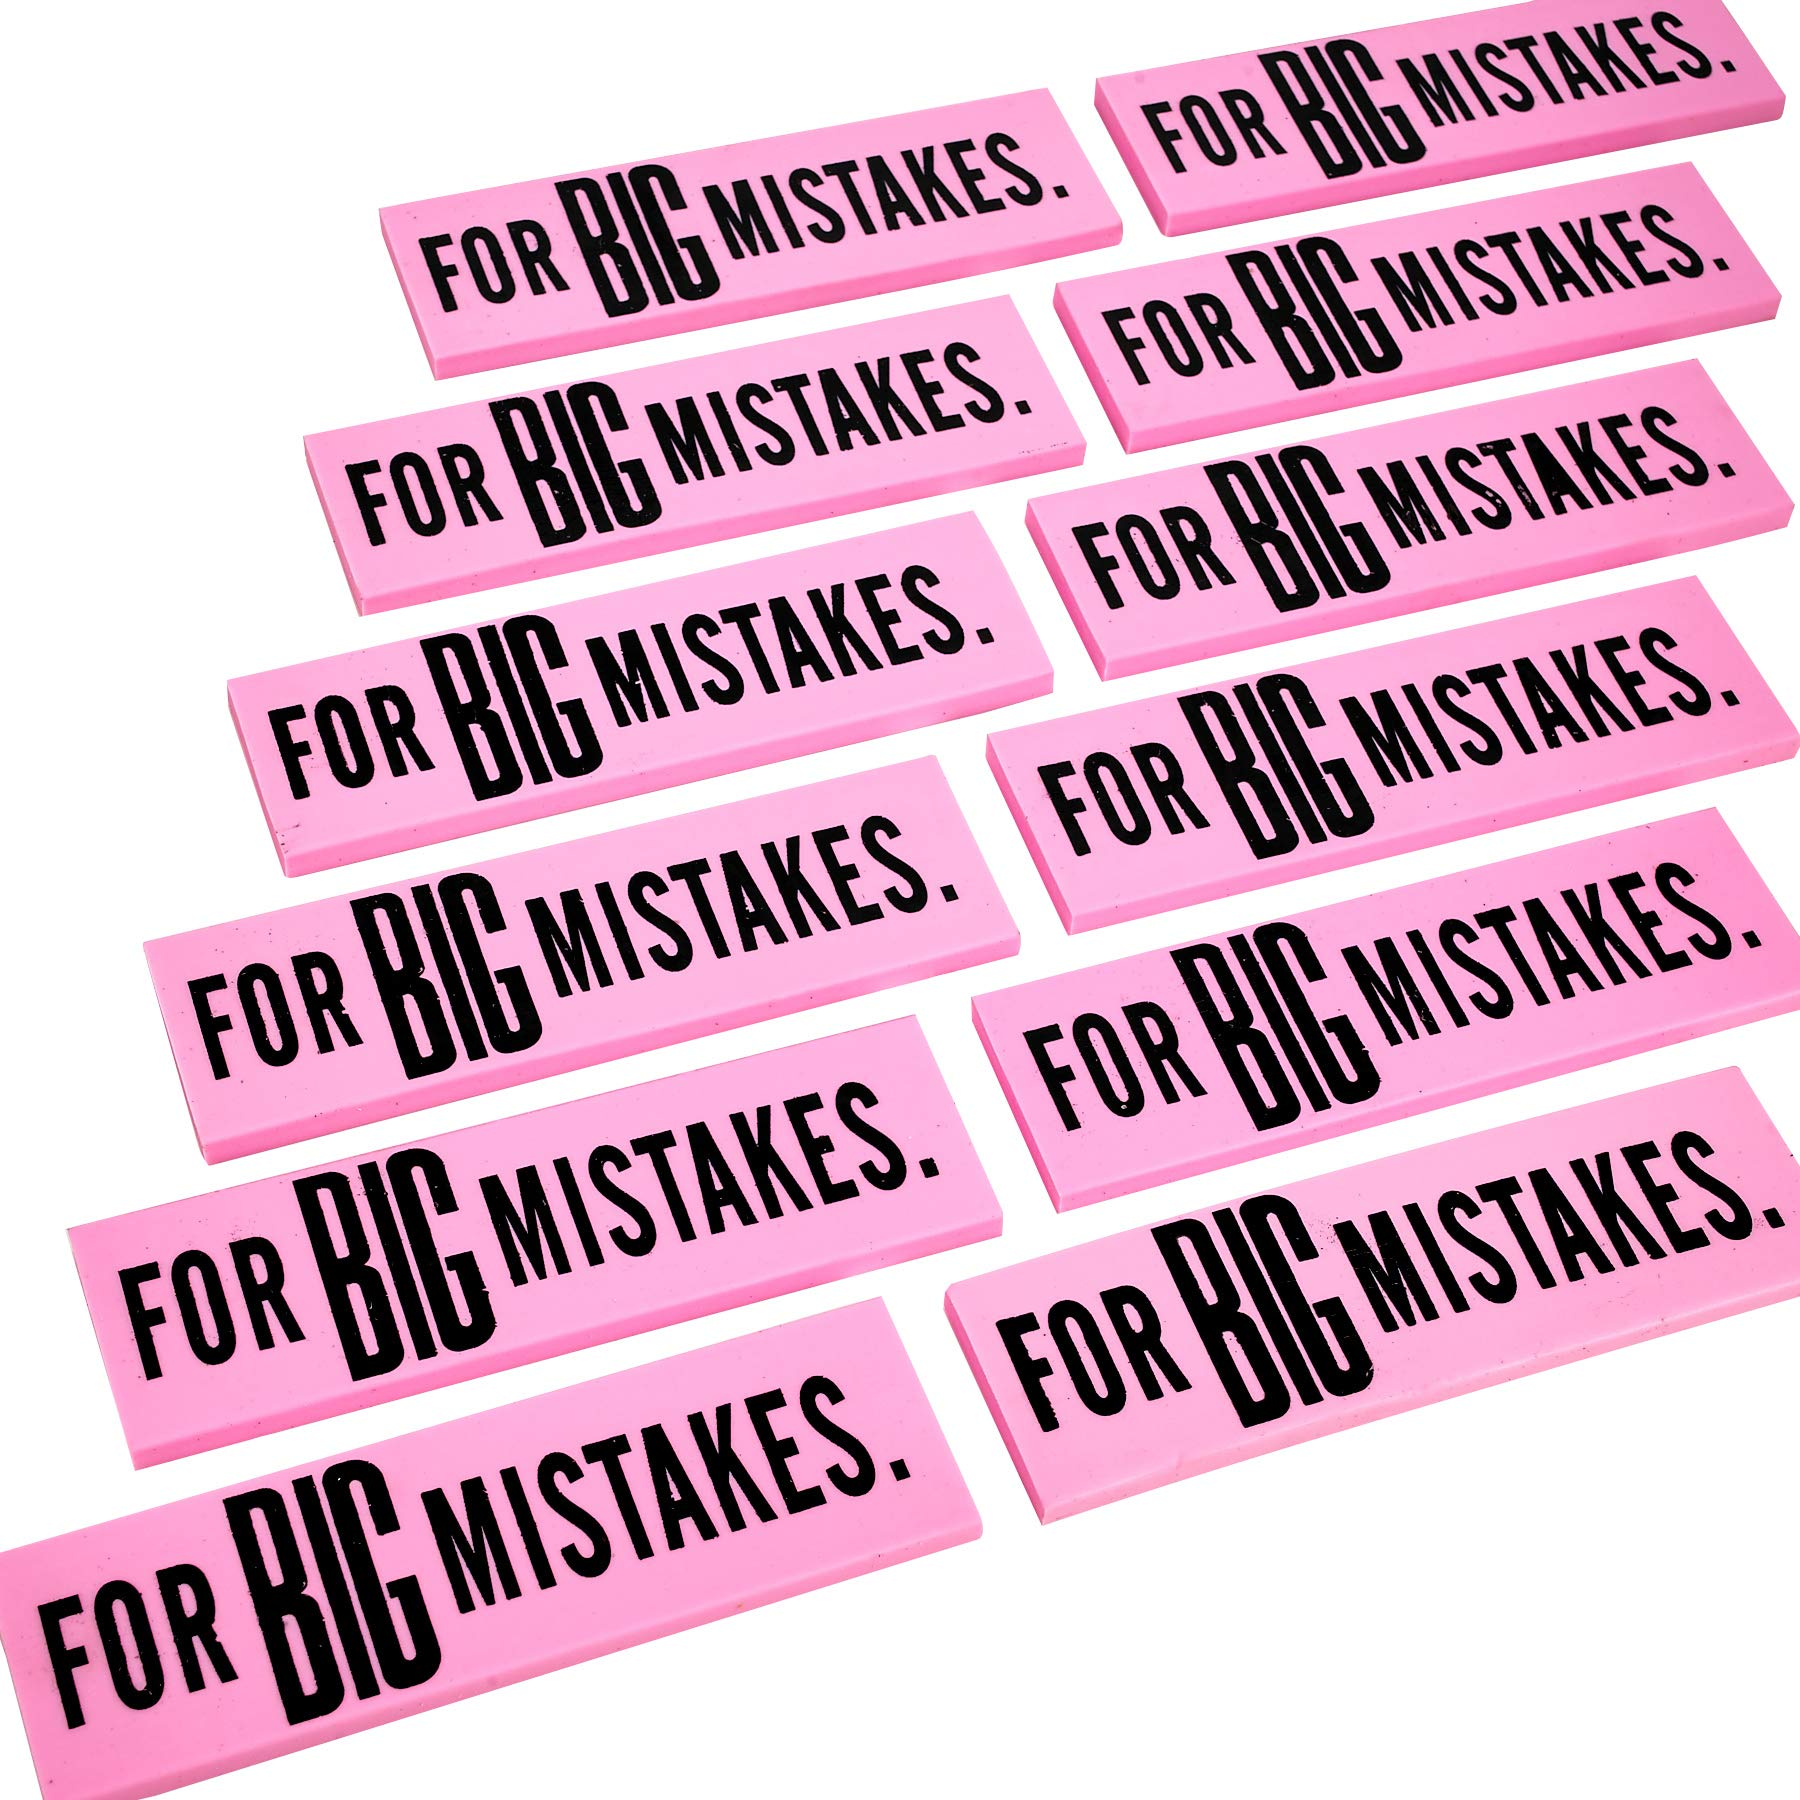 Big Mistake Eraser – 12 Pack Jumbo Eraser – Pencil Eraser School Supplies for Kids – Great for Children on Preschool, Elementary and Middle School by Kicko (Image #4)